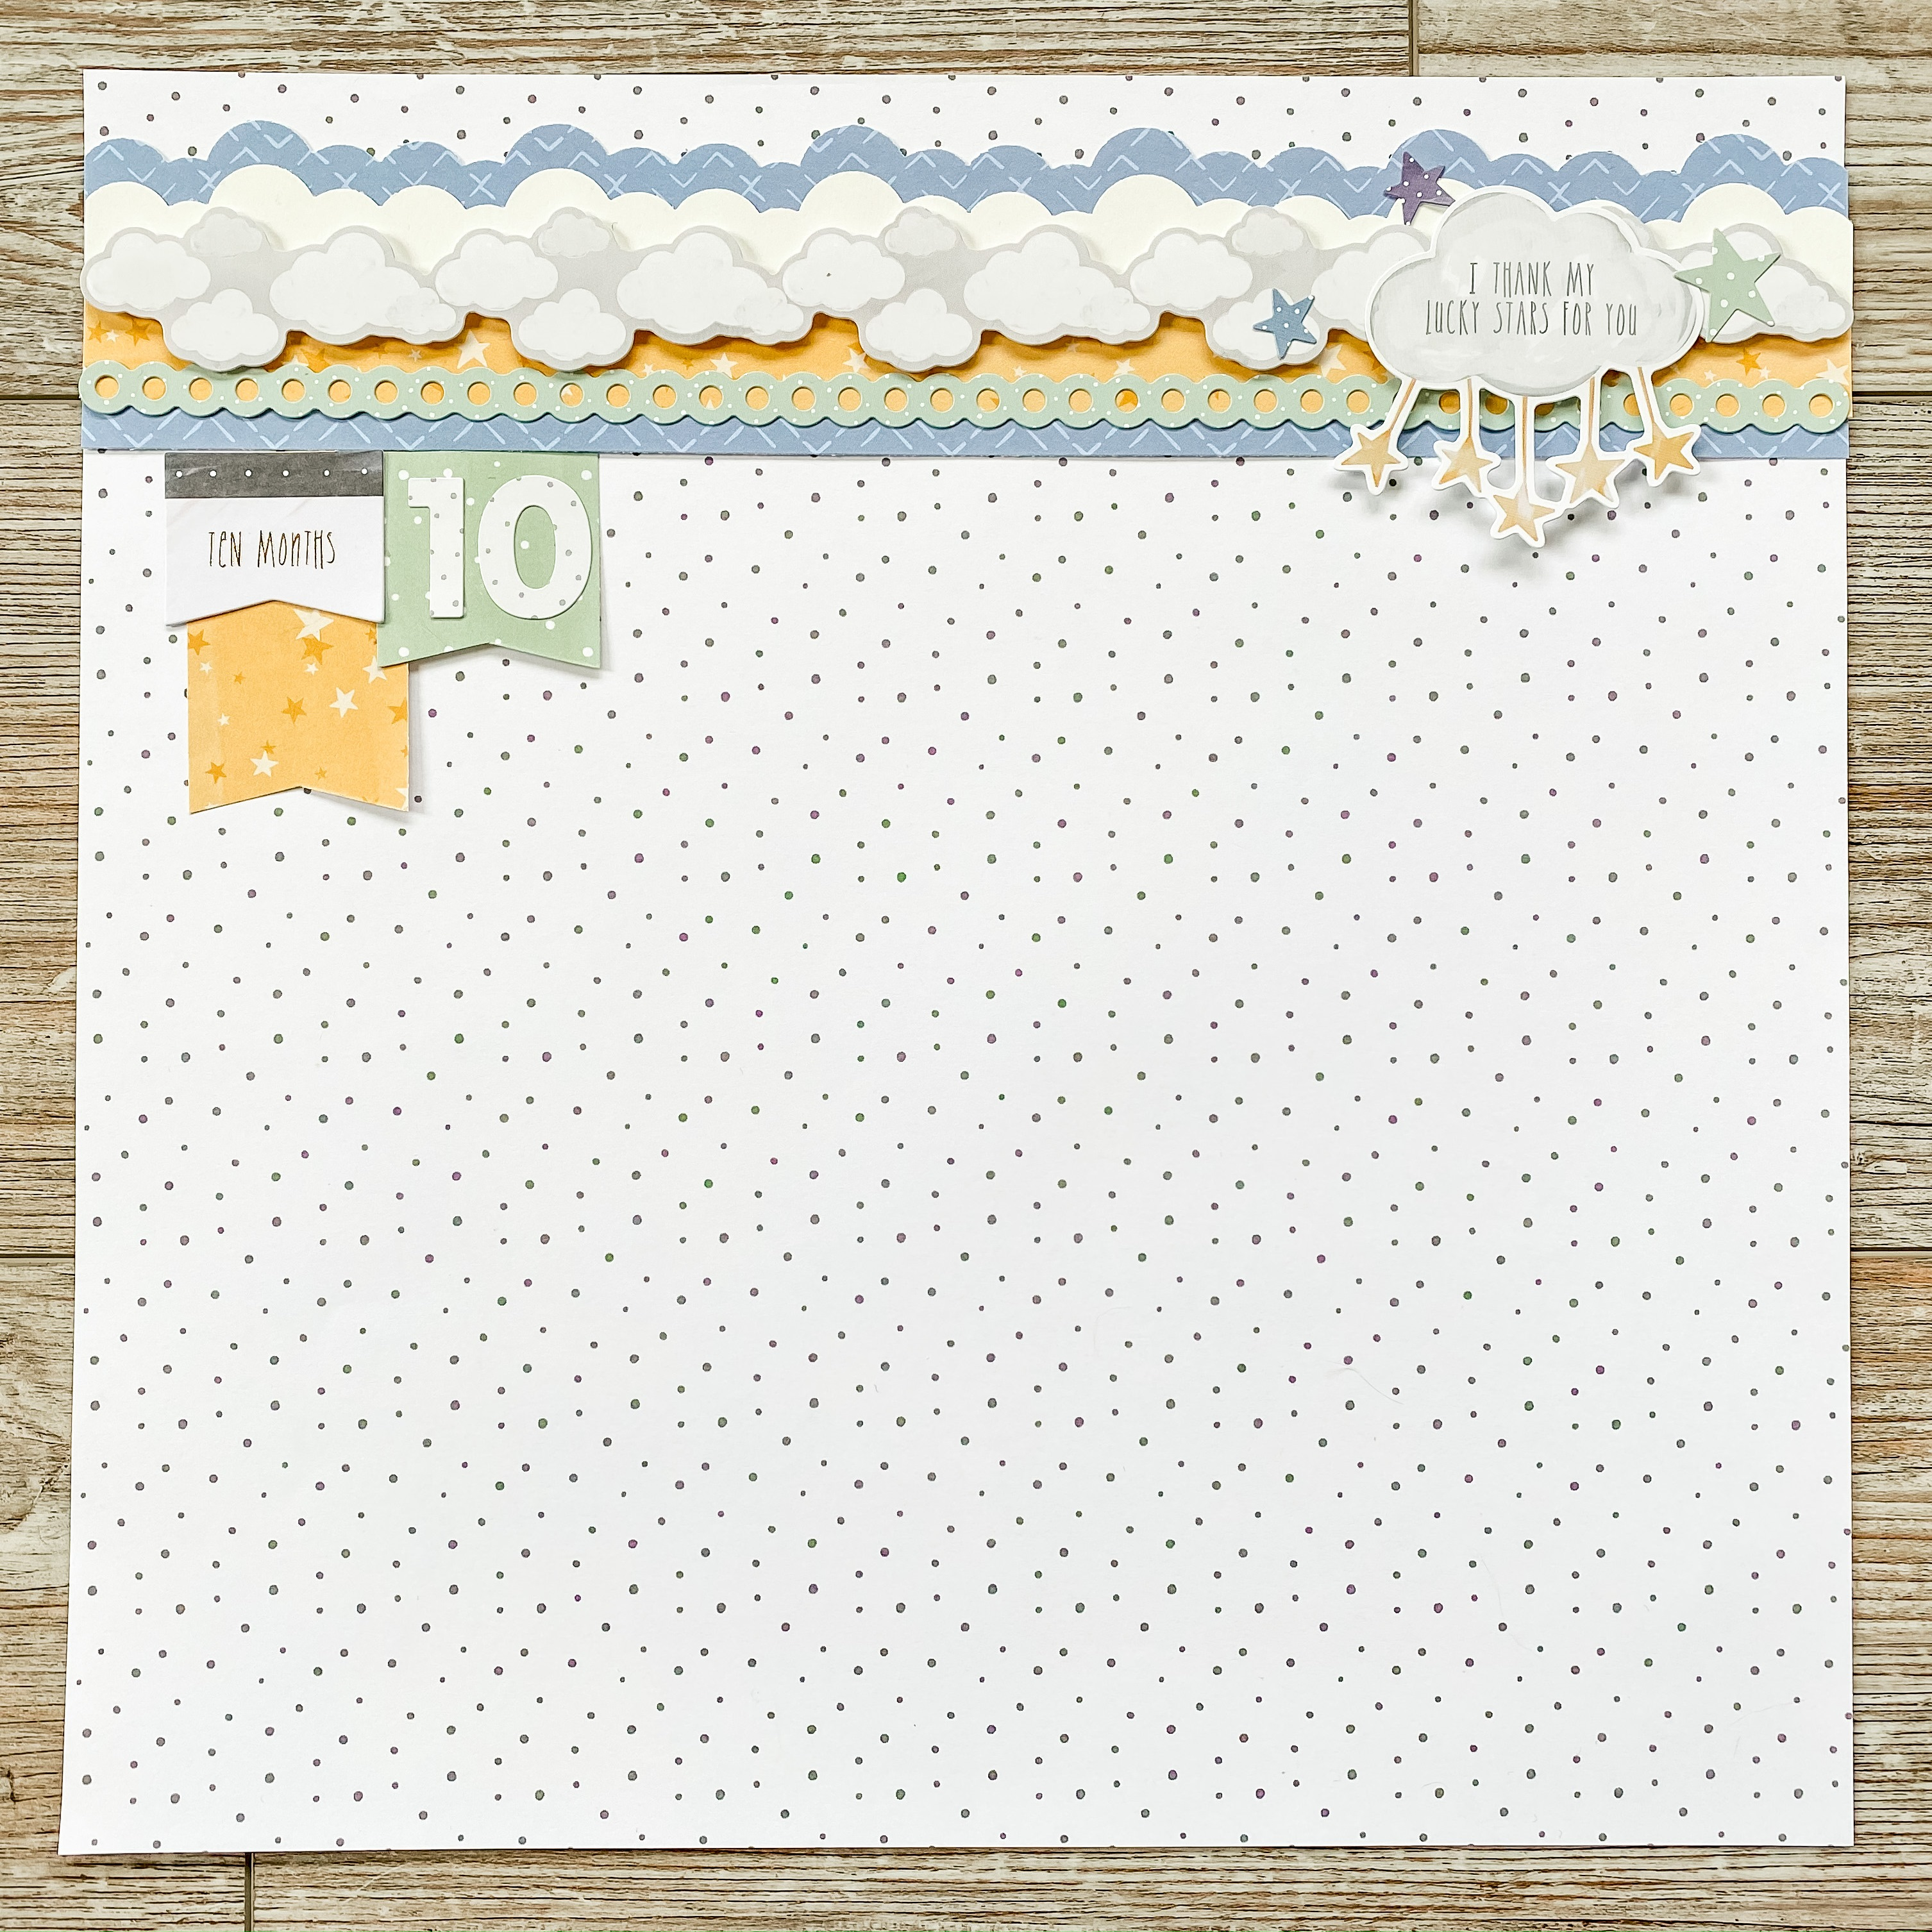 Little-Dreamer-Collection-12-Months-Borders-Creative-Memories-4